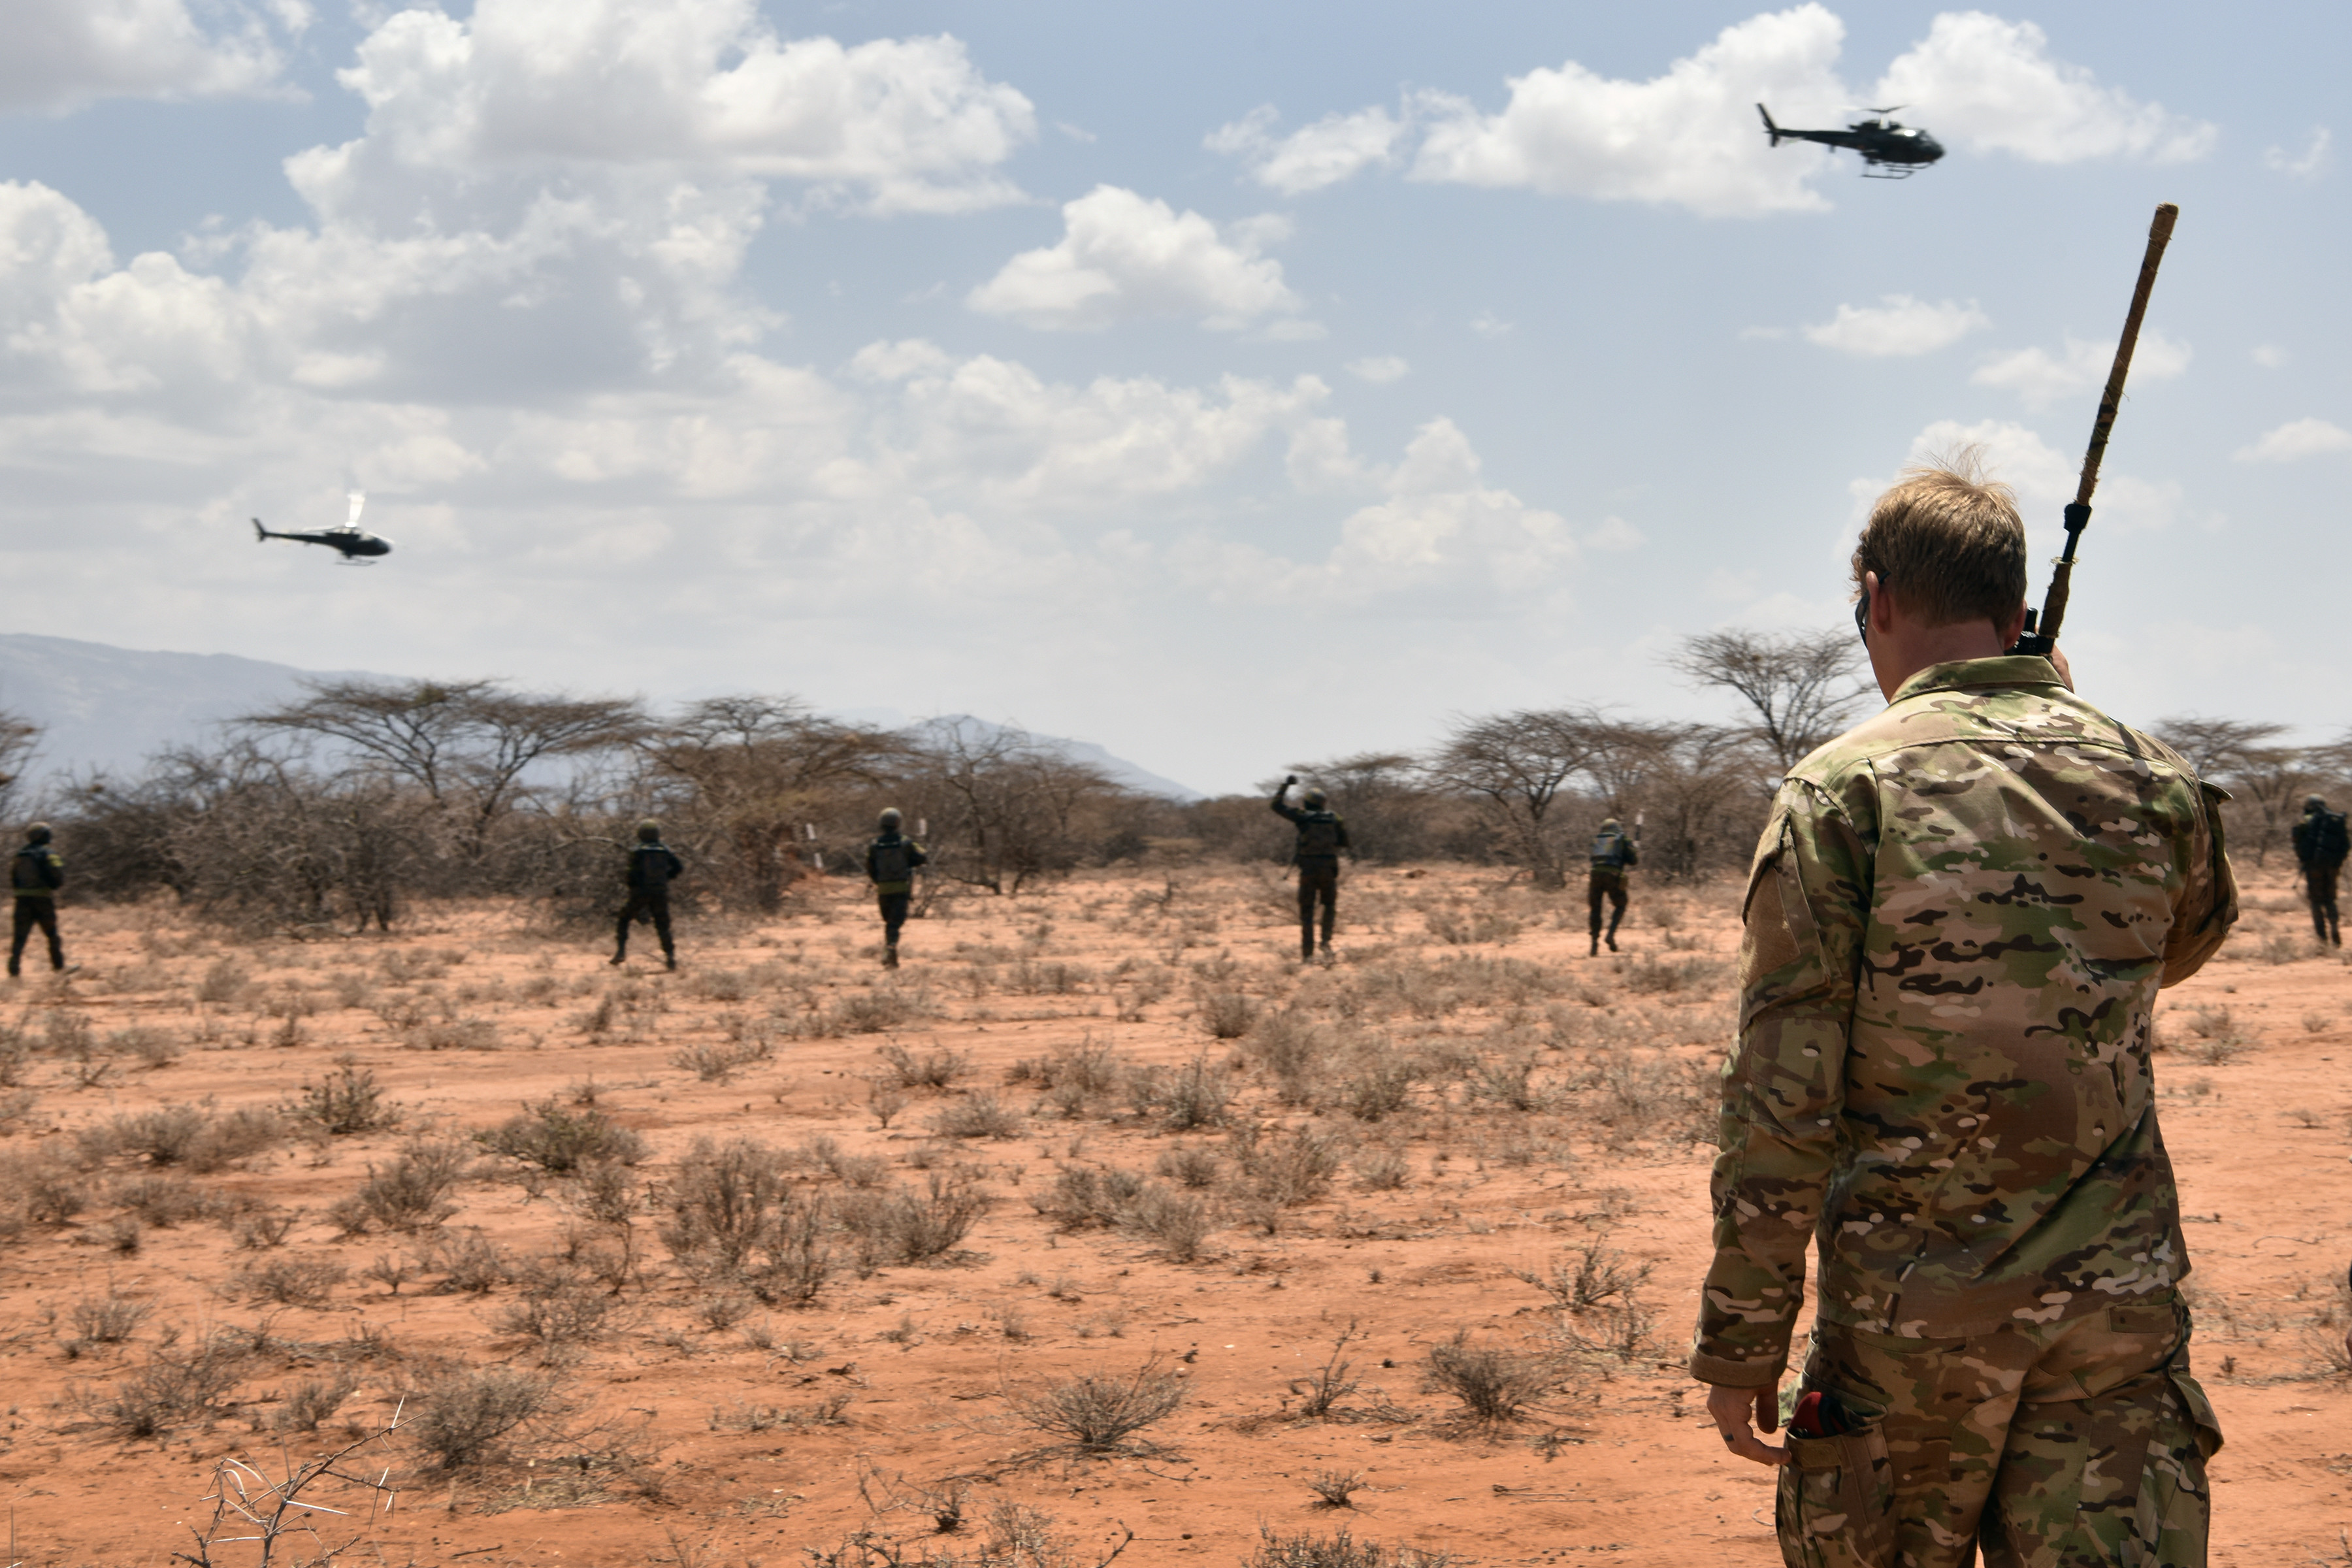 U.S. Air Force special tactics Airman with the 22nd Special Tactics Squadron observes the final demonstration of the African Partnership Flight Kenya 2019 program at Larisoro Air Strip, Kenya, August 25, 2019. The culmination event, Linda Rhino 2, incorporated multiple skills covered during the week-long program including combat search and rescue, aeromedical evacuation and personnel recovery command and control. (U.S. Air Force photo by Master Sgt. Renae Pittman)